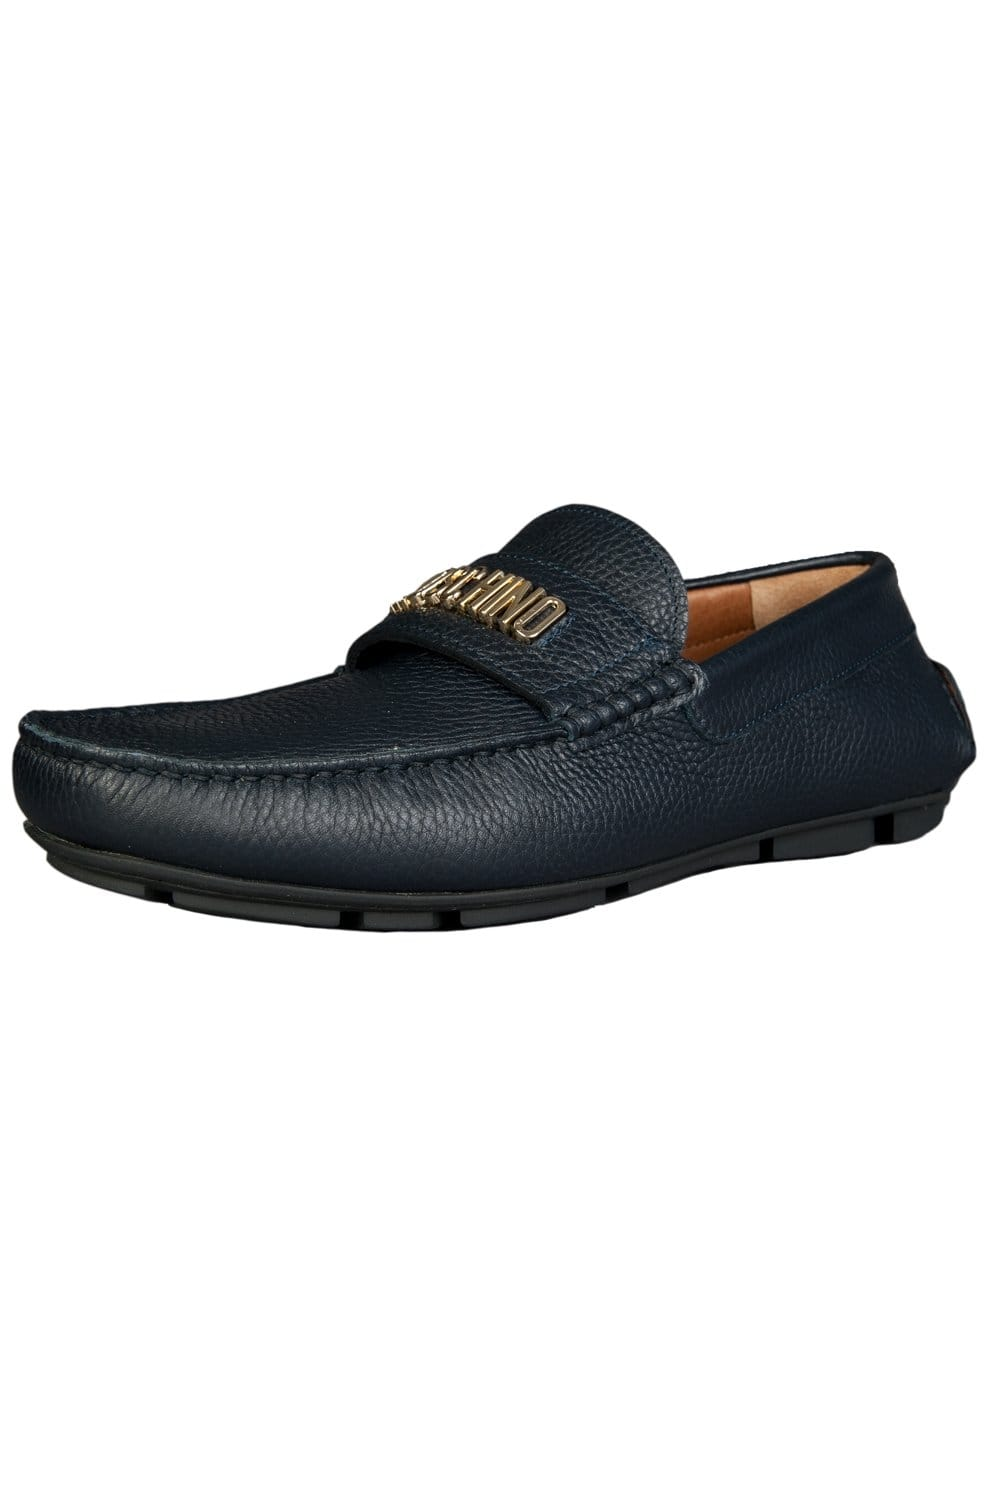 Mens Moschino Driving Shoes